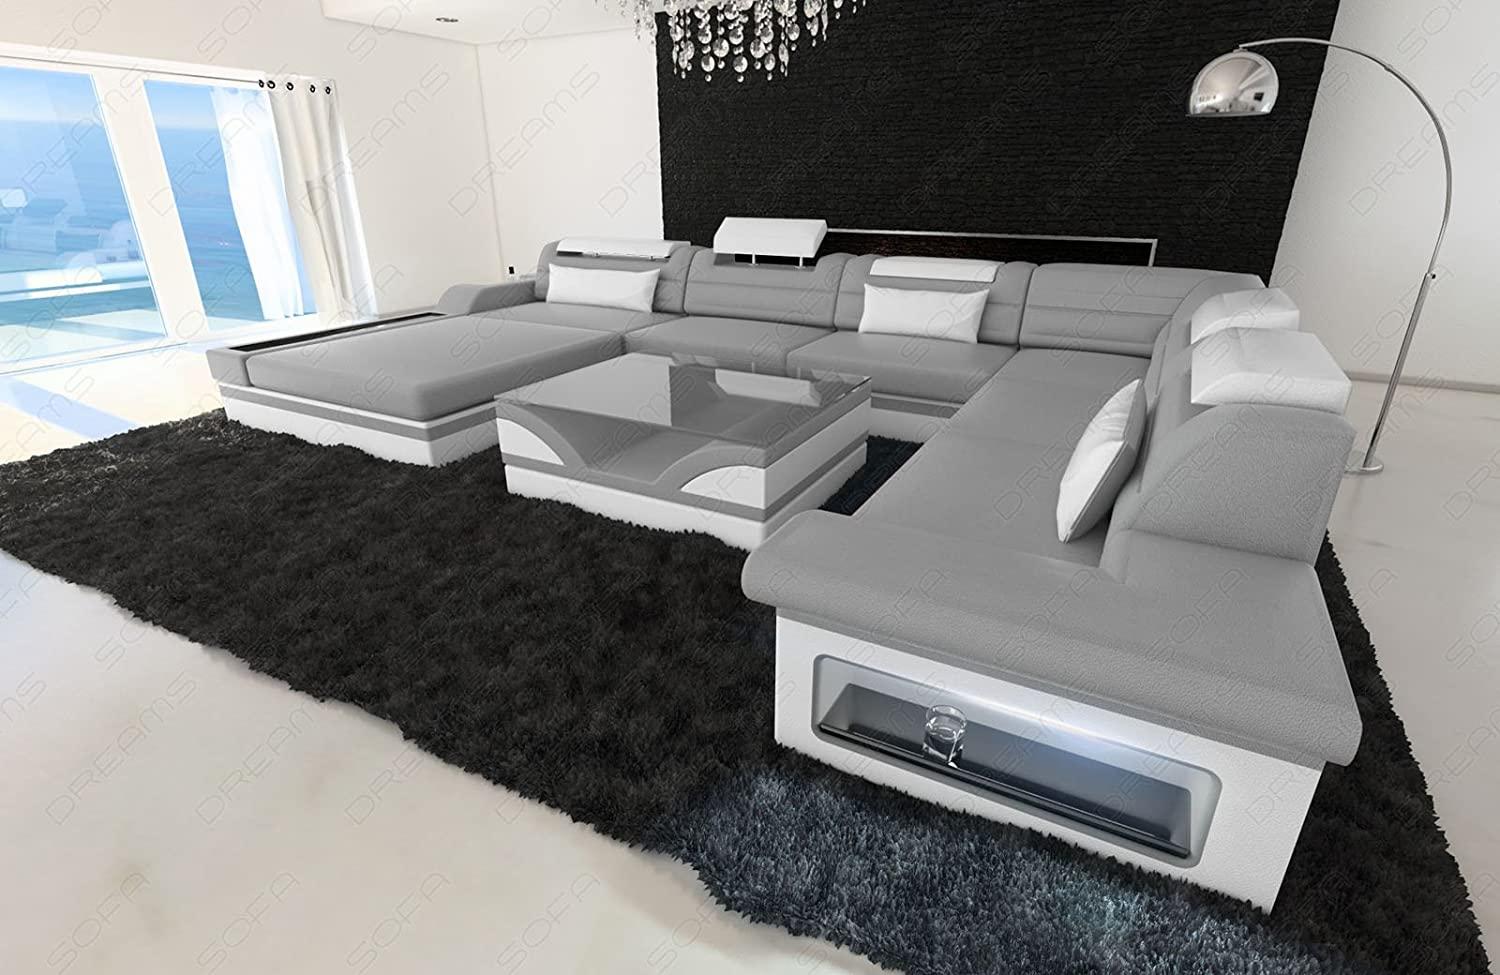 Amazon design sectional sofa mezzo xxl with led lights amazon design sectional sofa mezzo xxl with led lights kitchen dining parisarafo Gallery